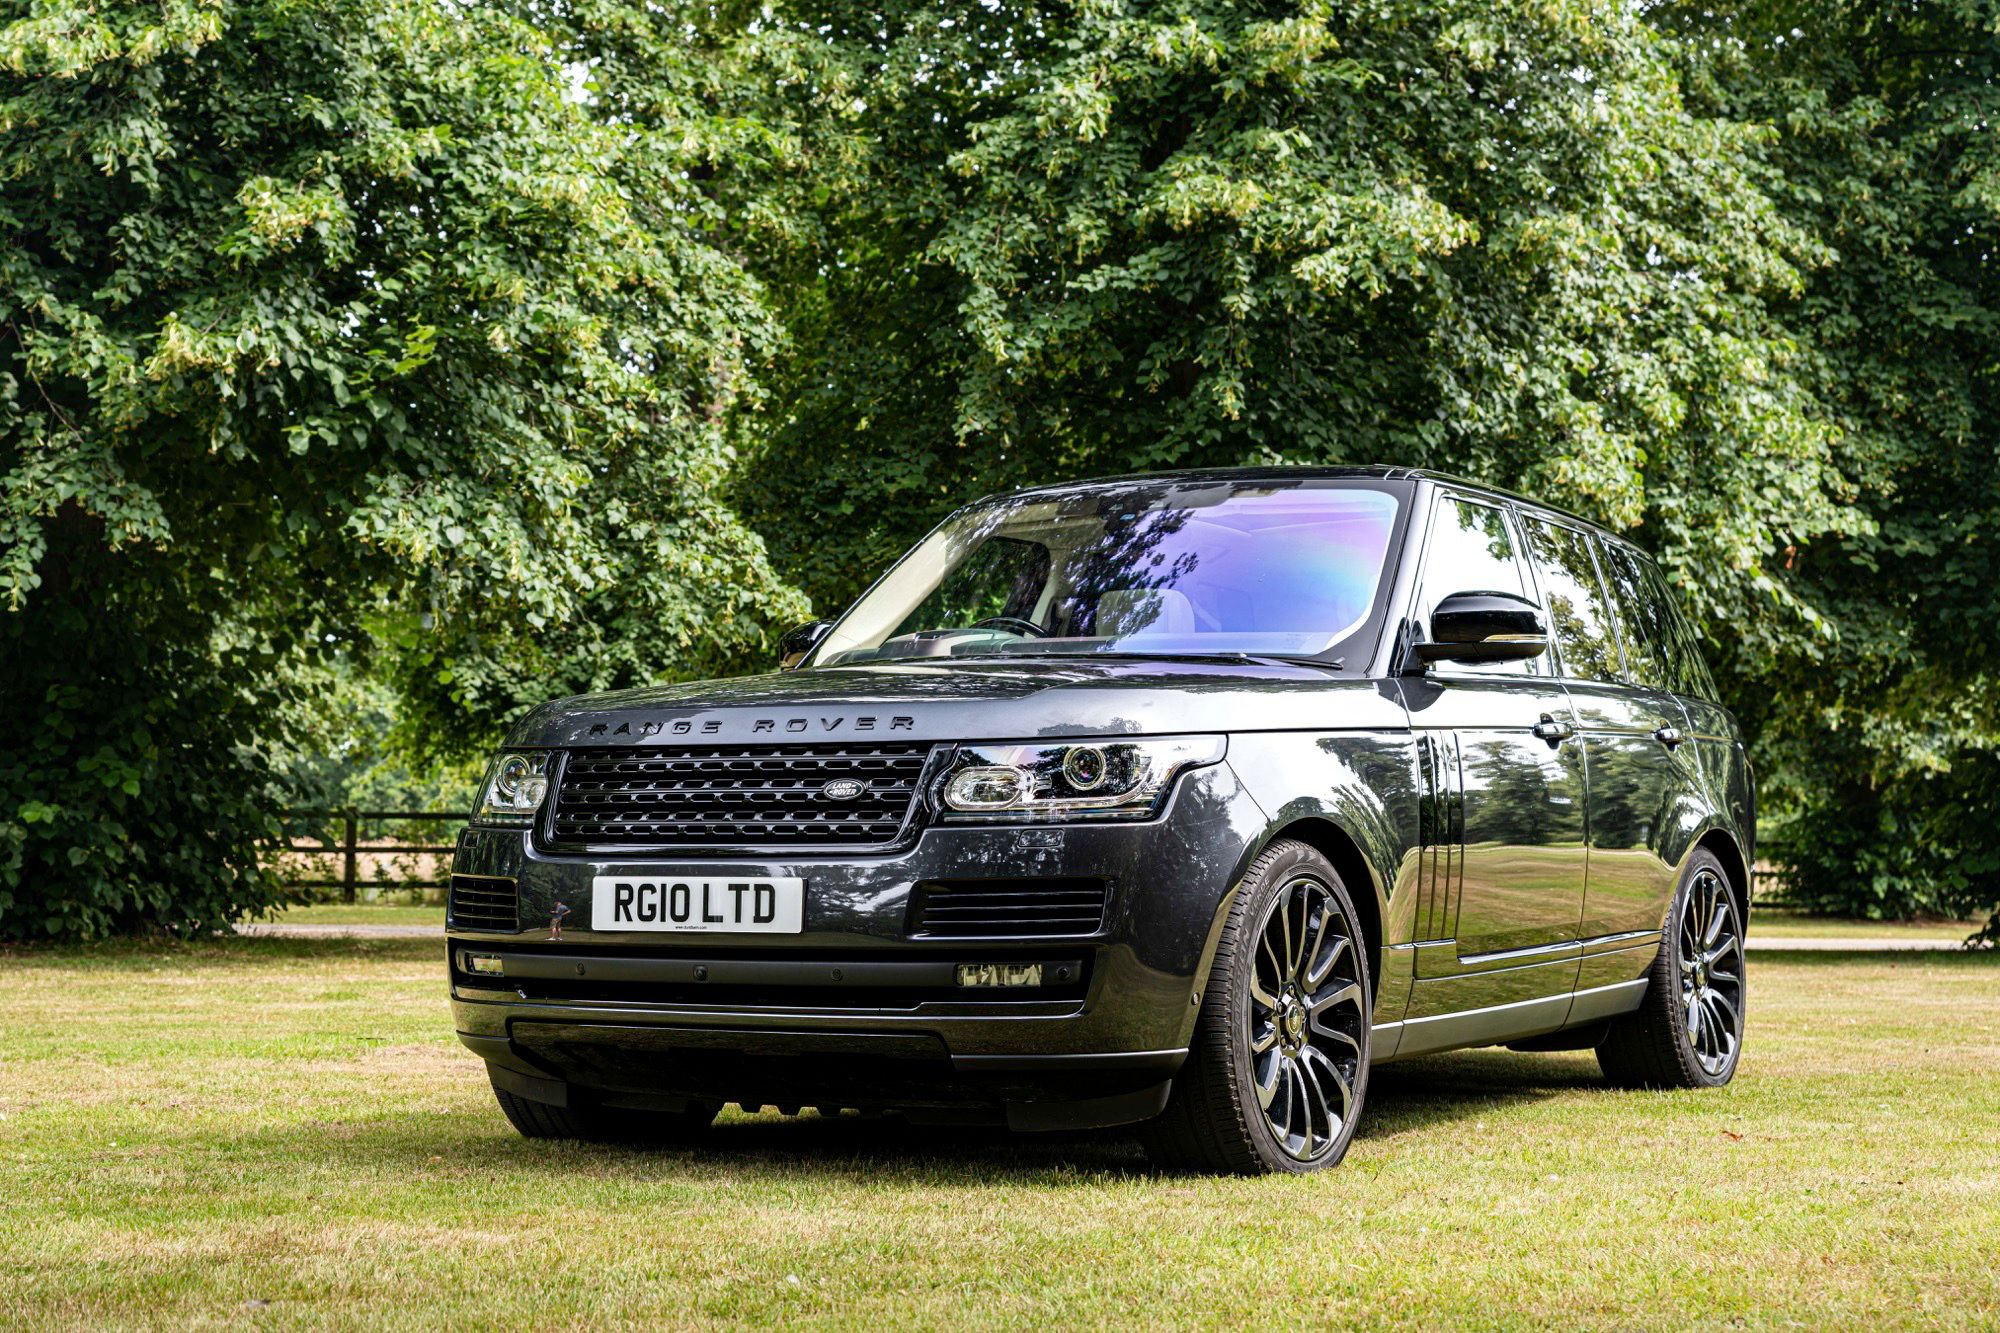 2017 (17) Range Rover 5.0 V8 Supercharged Autobiography